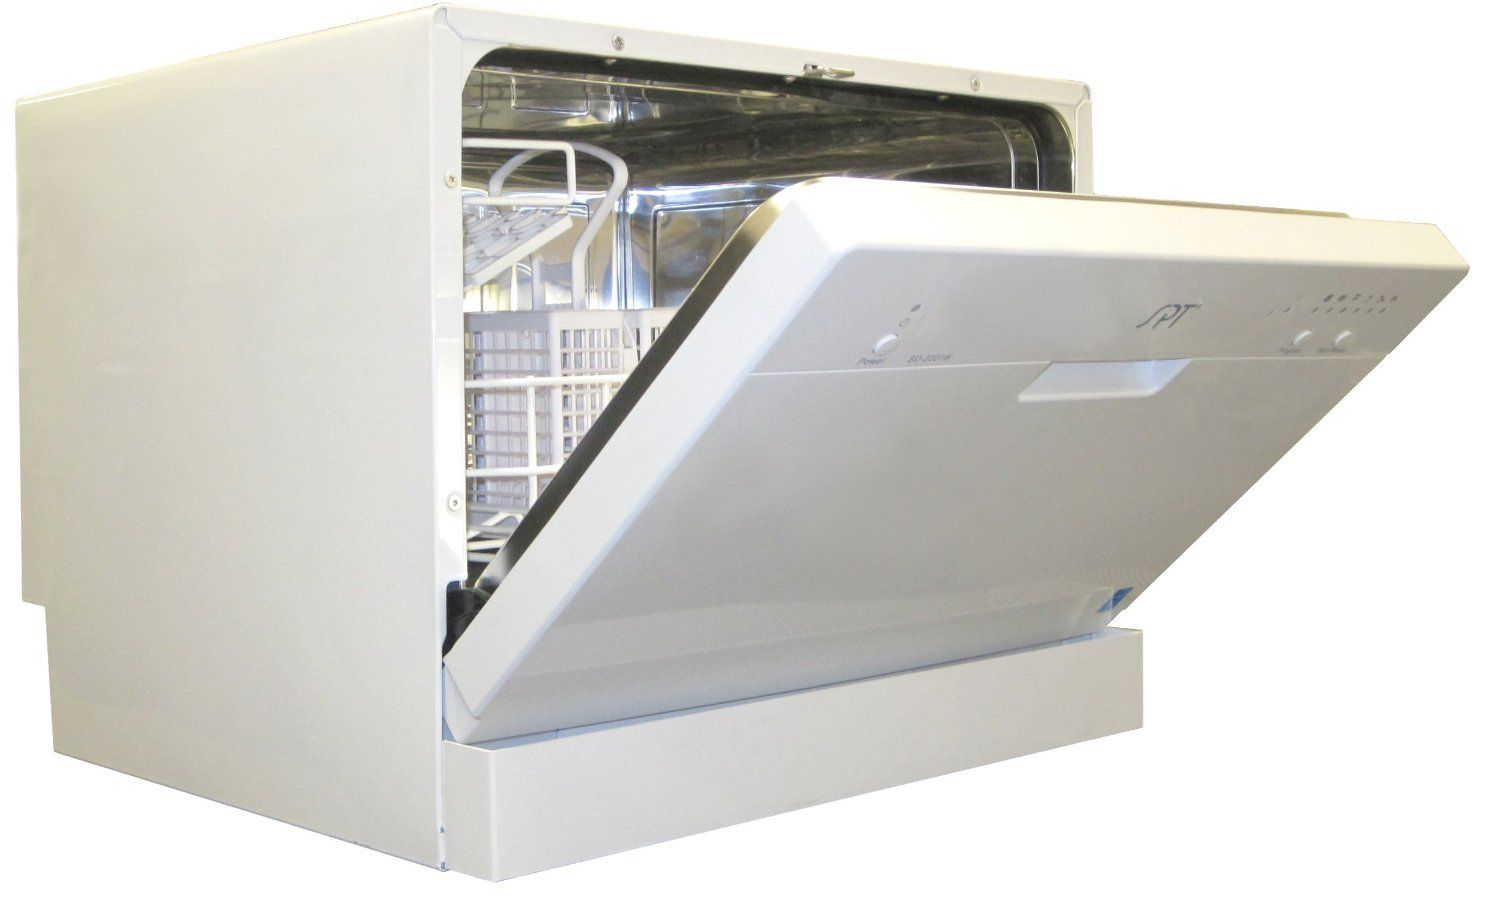 SPT Countertop Dishwasher for Apartment - http://www ...